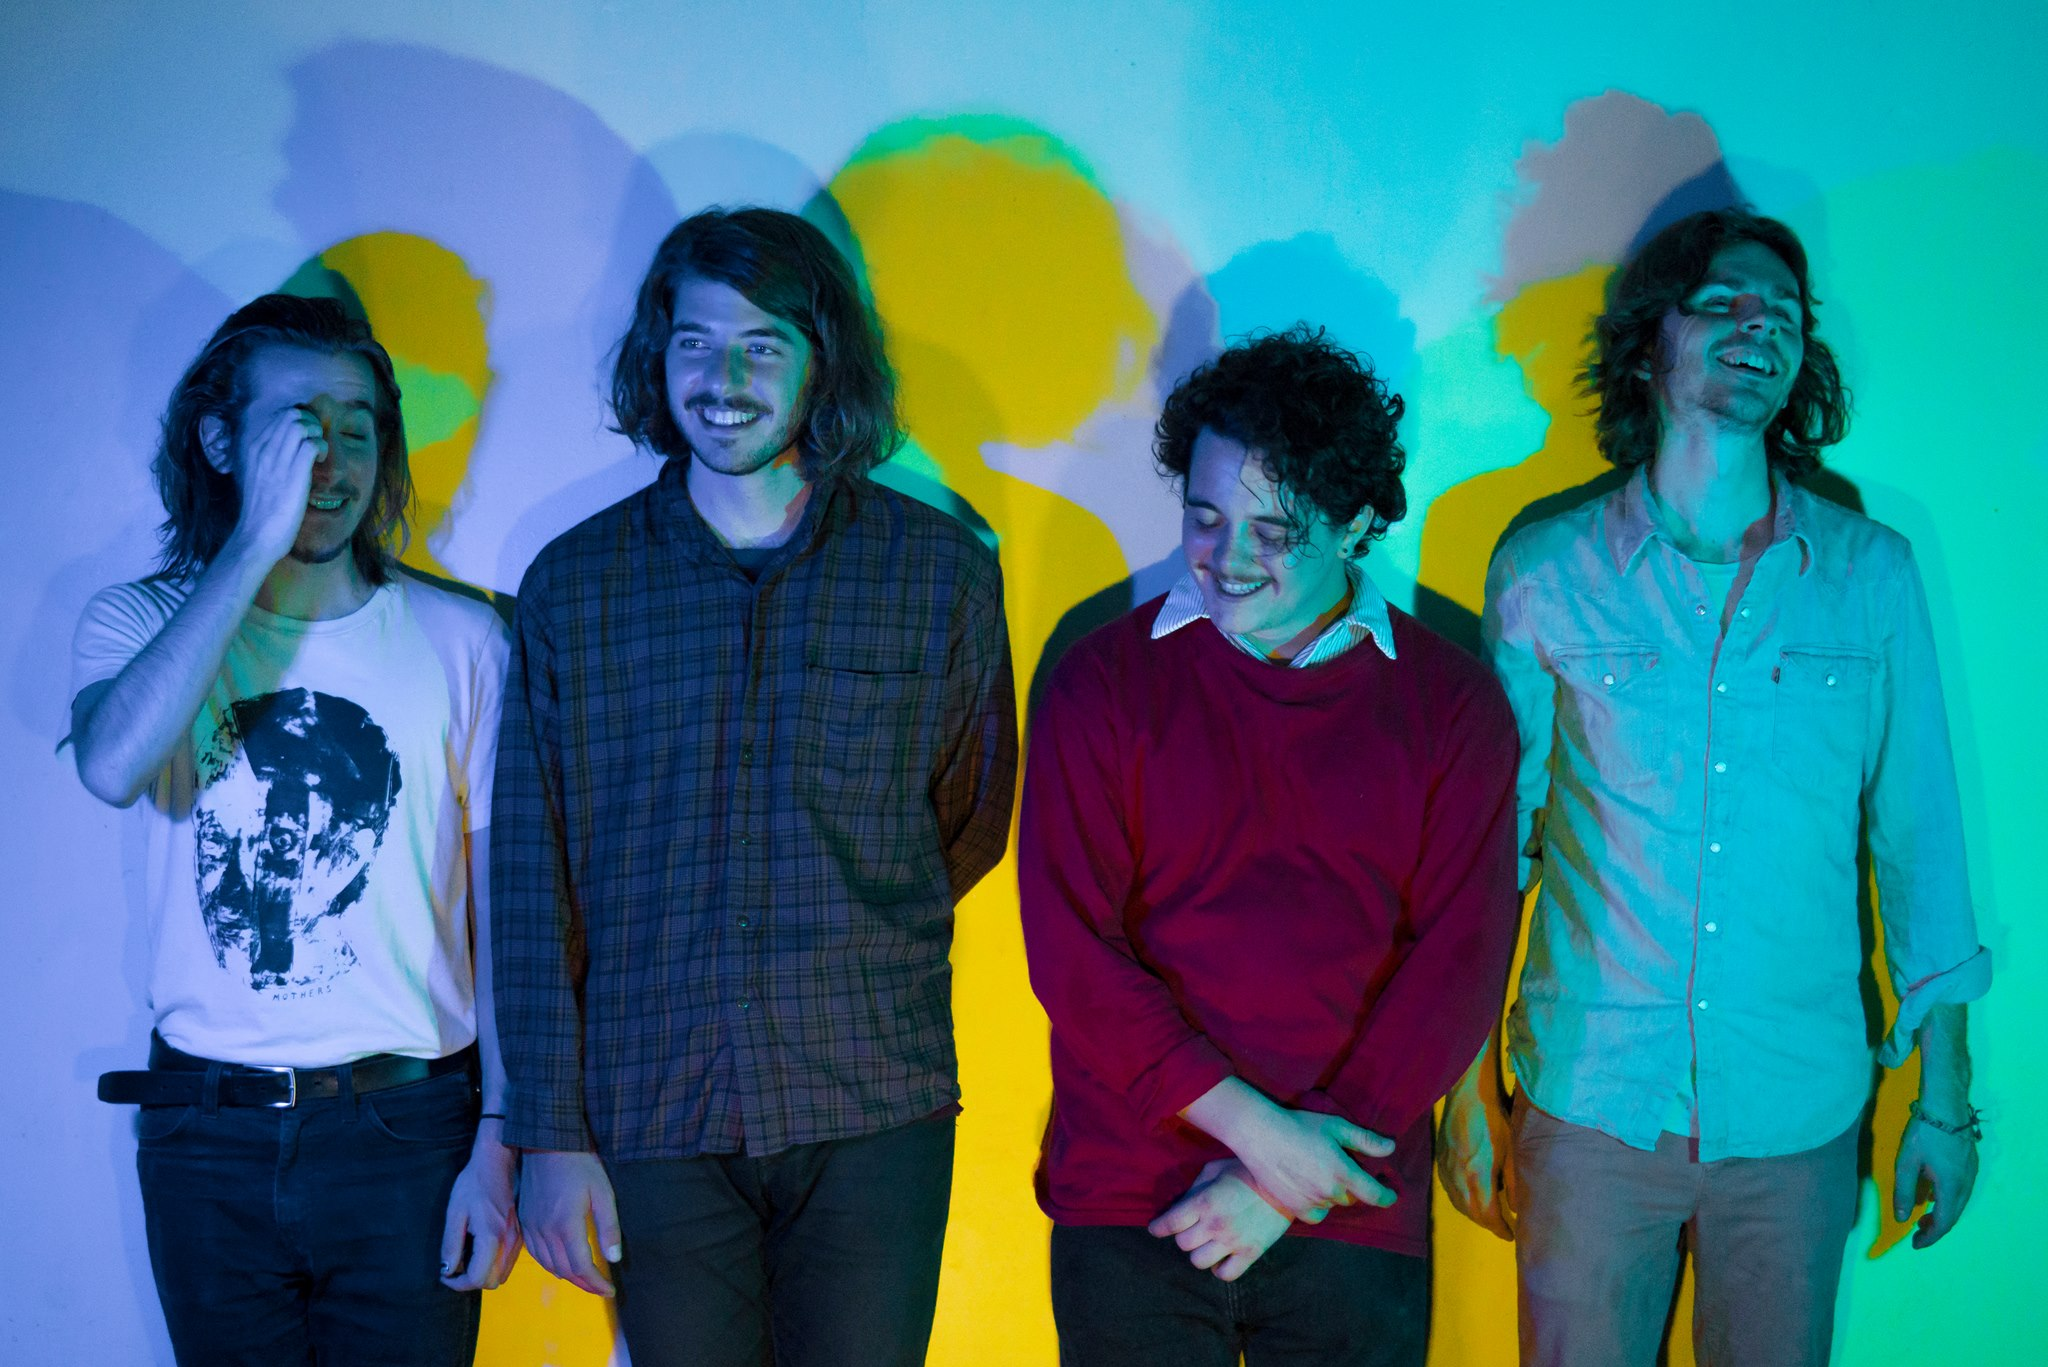 Philadelphia indie rock act The Districts will play the 9th Ward @ Babeville on April 13 at 8 p.m.